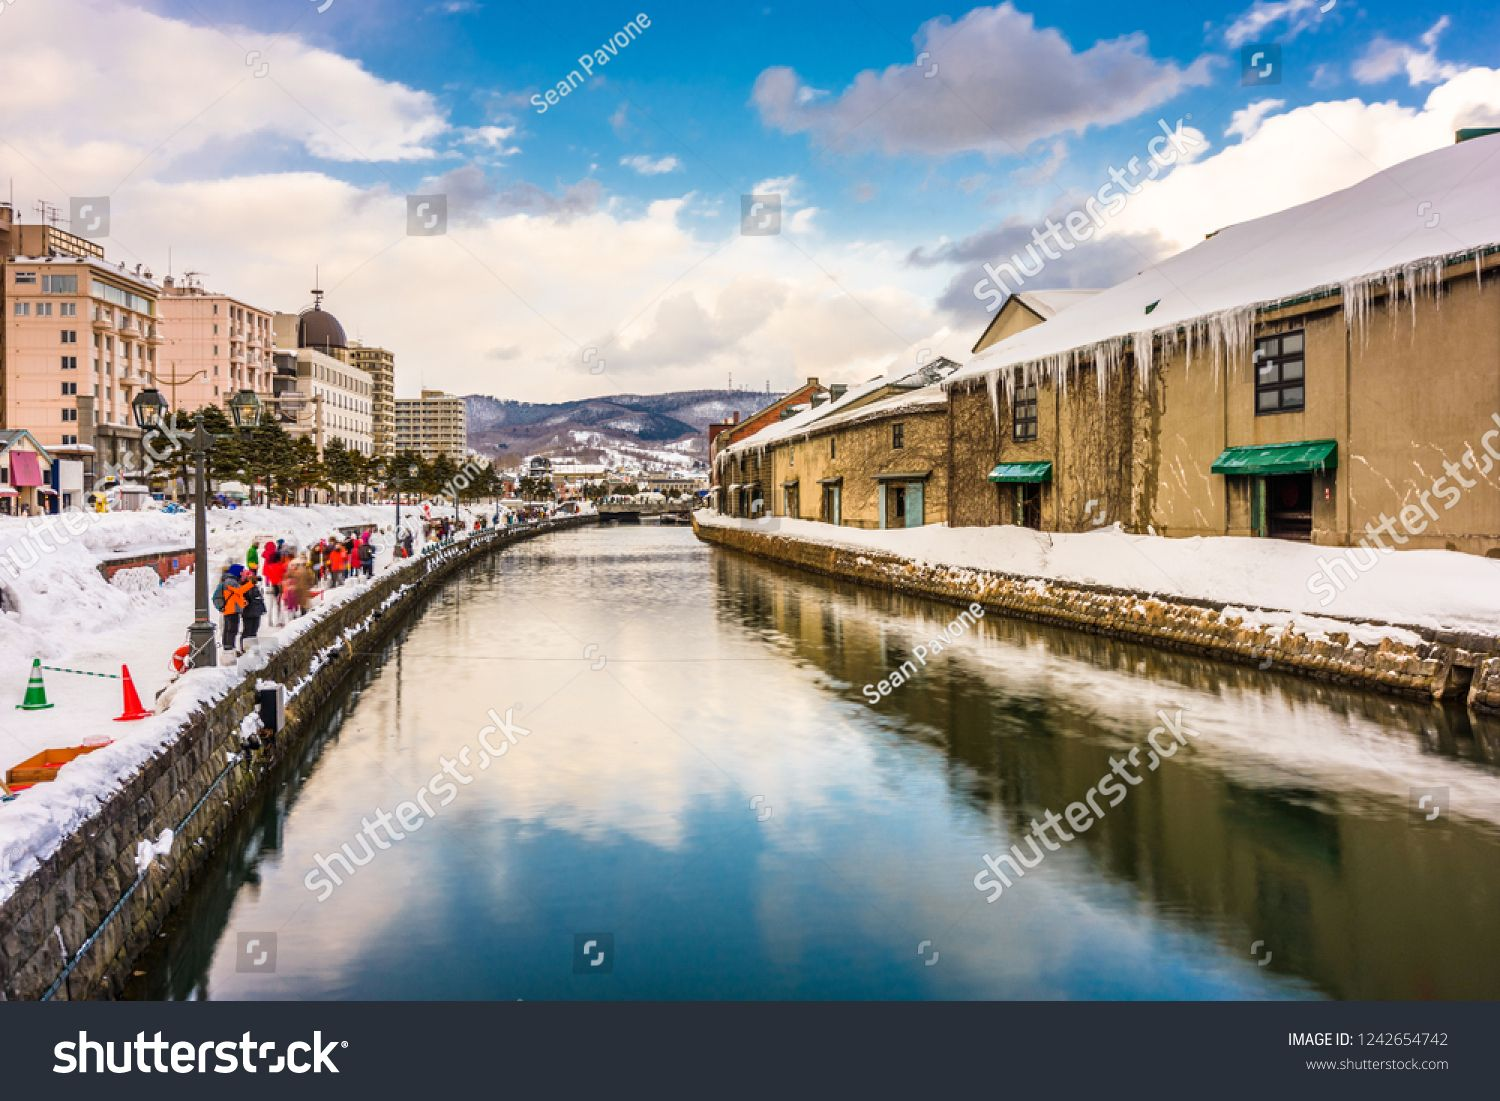 Otaru, Japan winter skyline on the canals. #Sponsored , #Sponsored, #Japan#Otaru#winter#canals